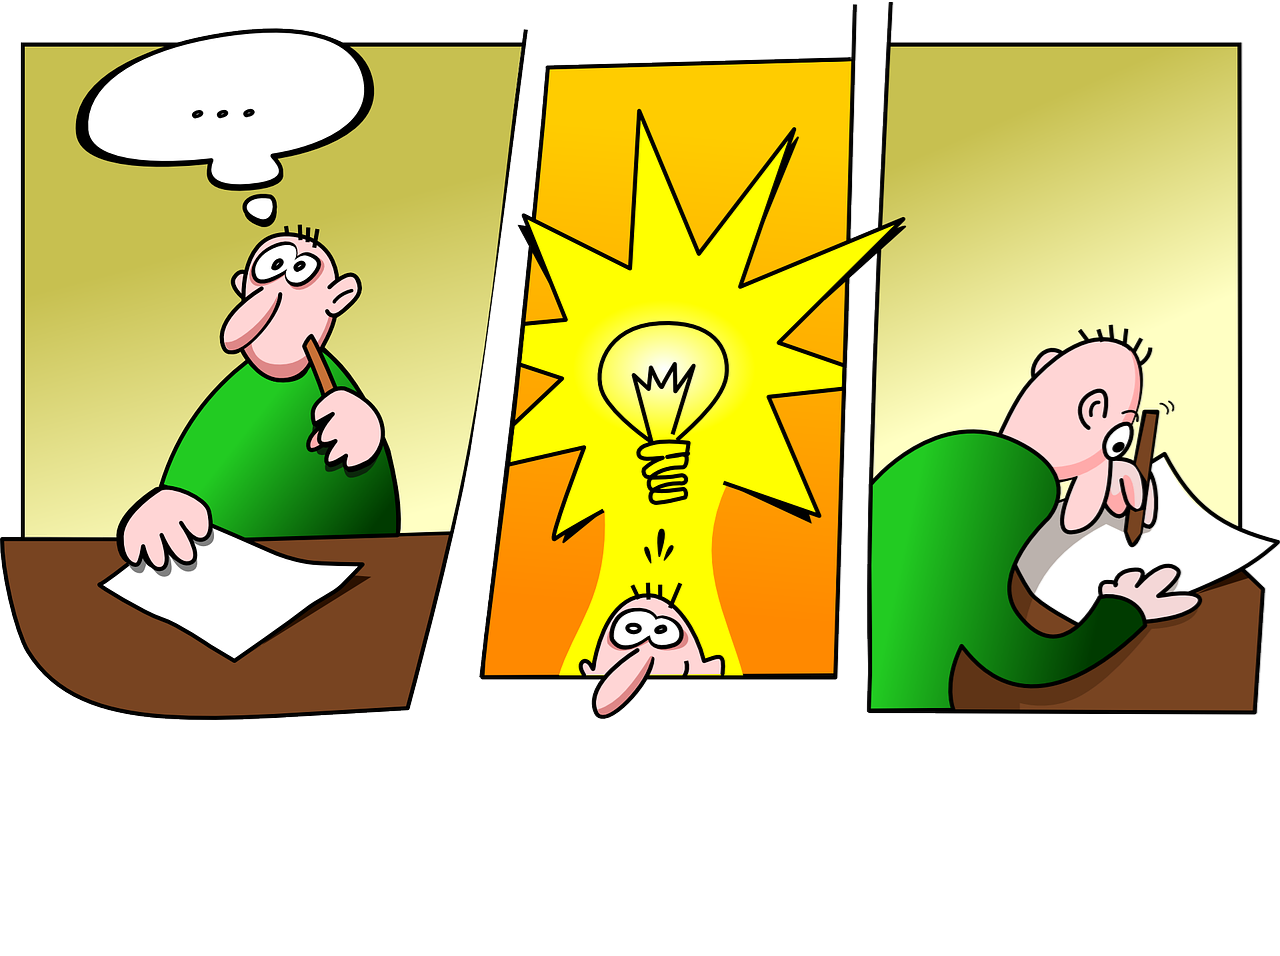 cartoon strip of an inventor and coming up with an idea